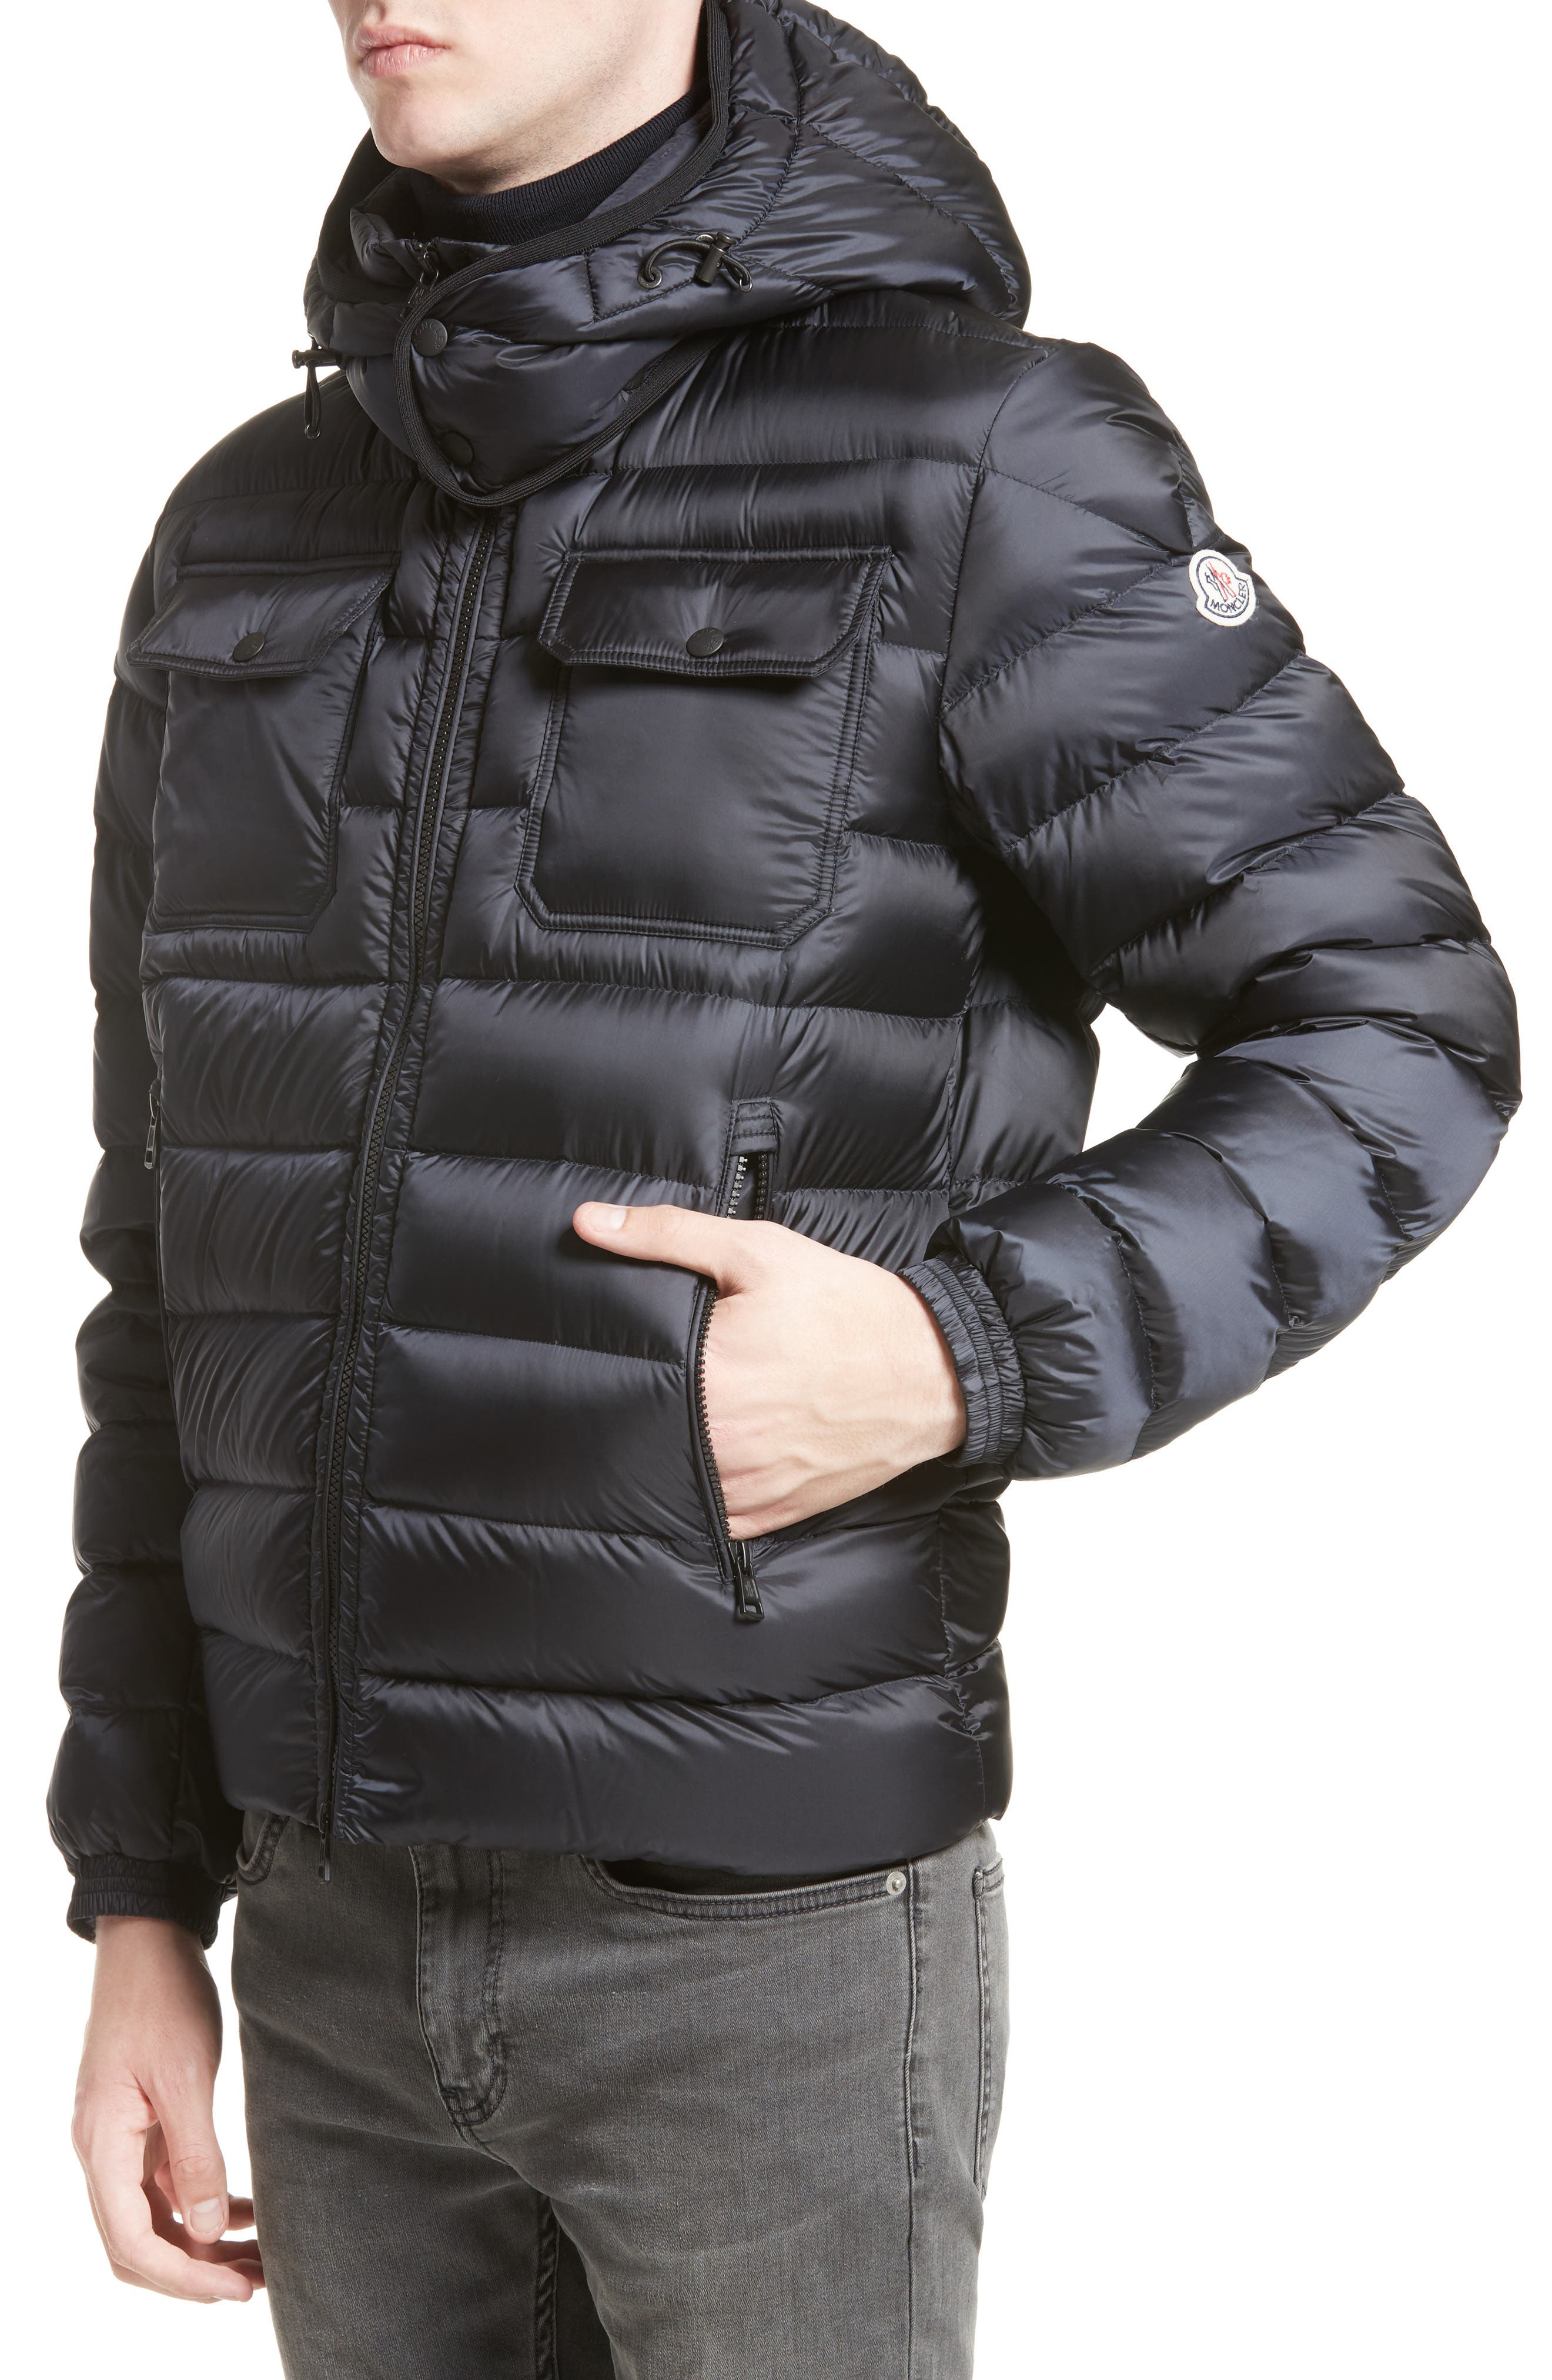 Valence Hooded Down Coat,                             Main thumbnail 1, color,                             419